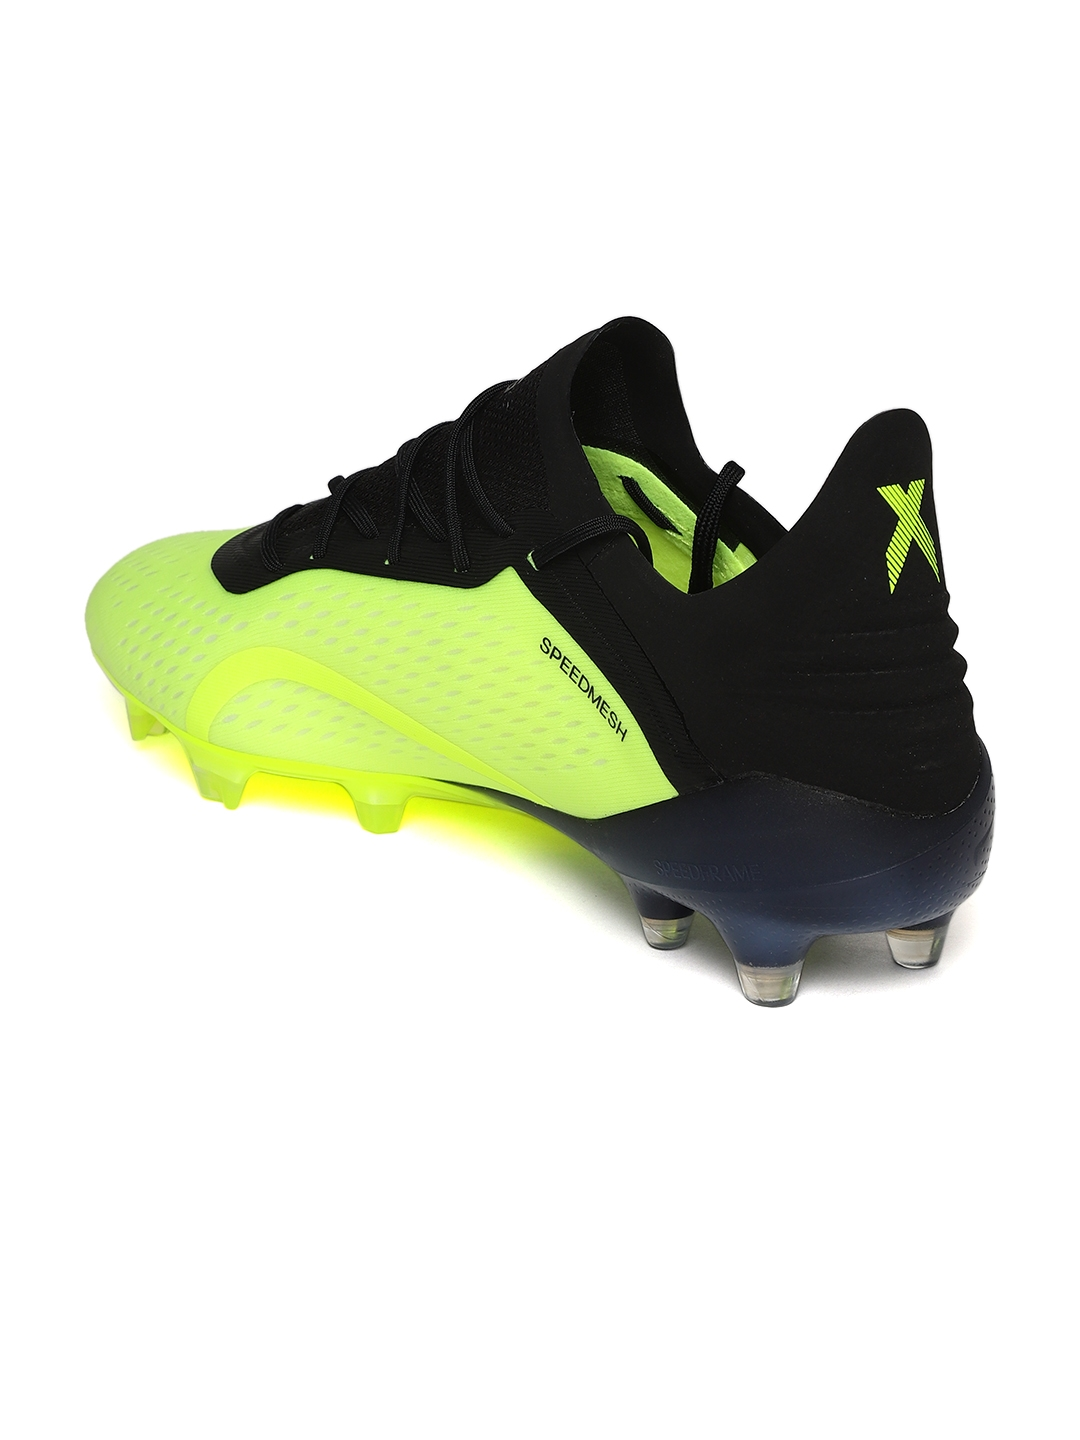 check out 55bc1 7885c ADIDAS Men Florescent Green   Black X 18.1 FG Football Shoes